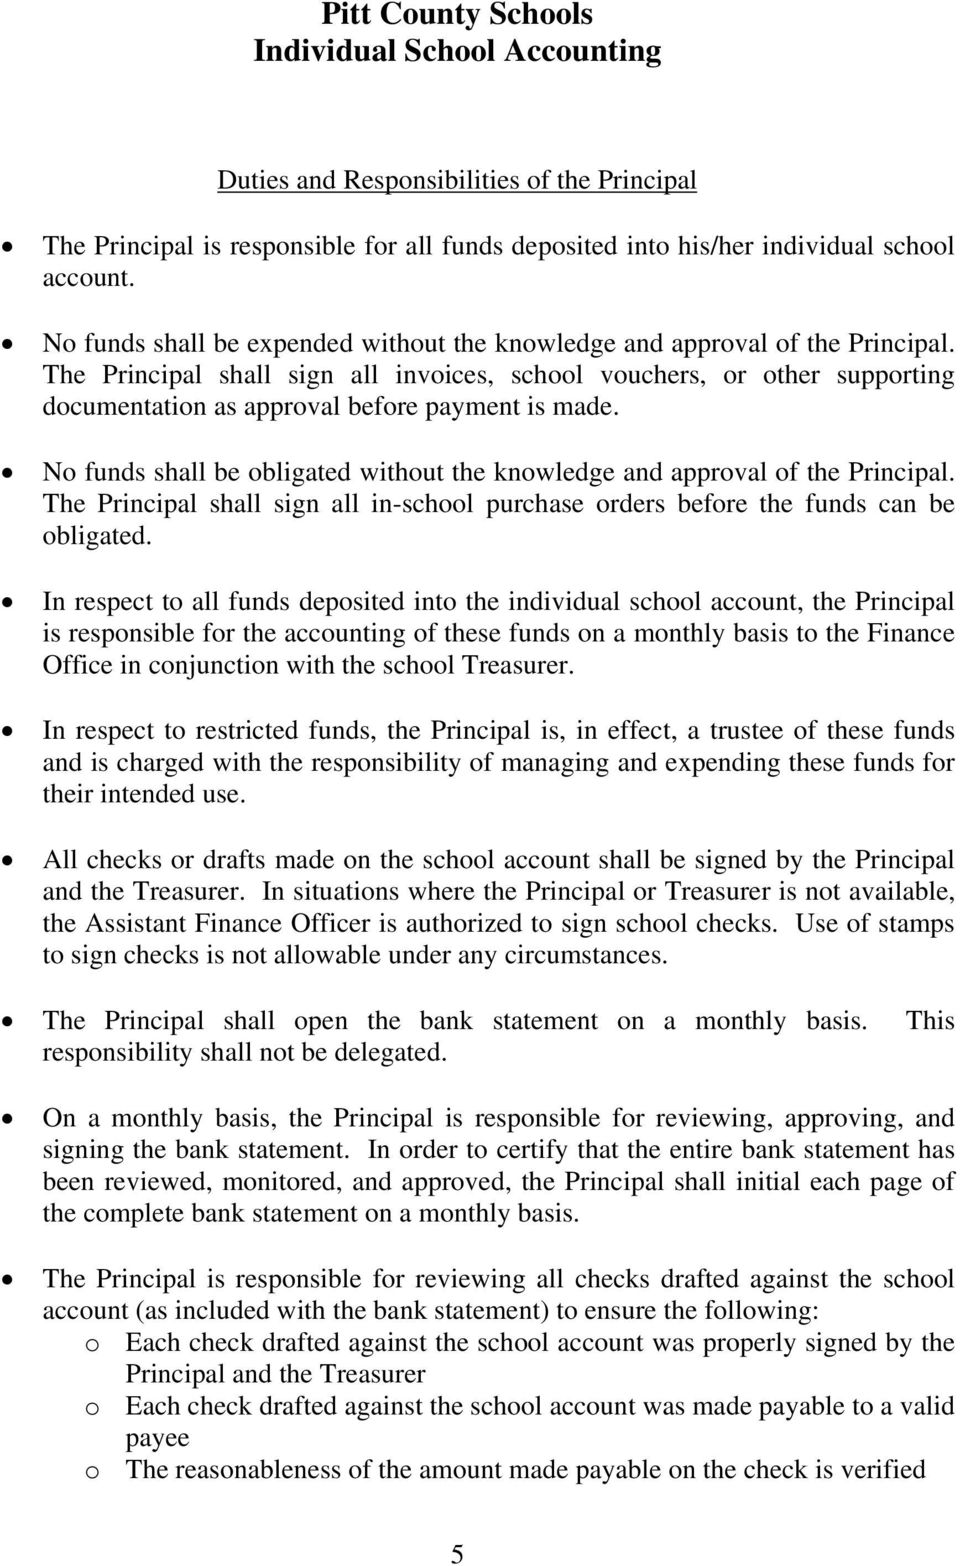 The Principal shall sign all invoices, school vouchers, or other supporting documentation as approval before payment is made.